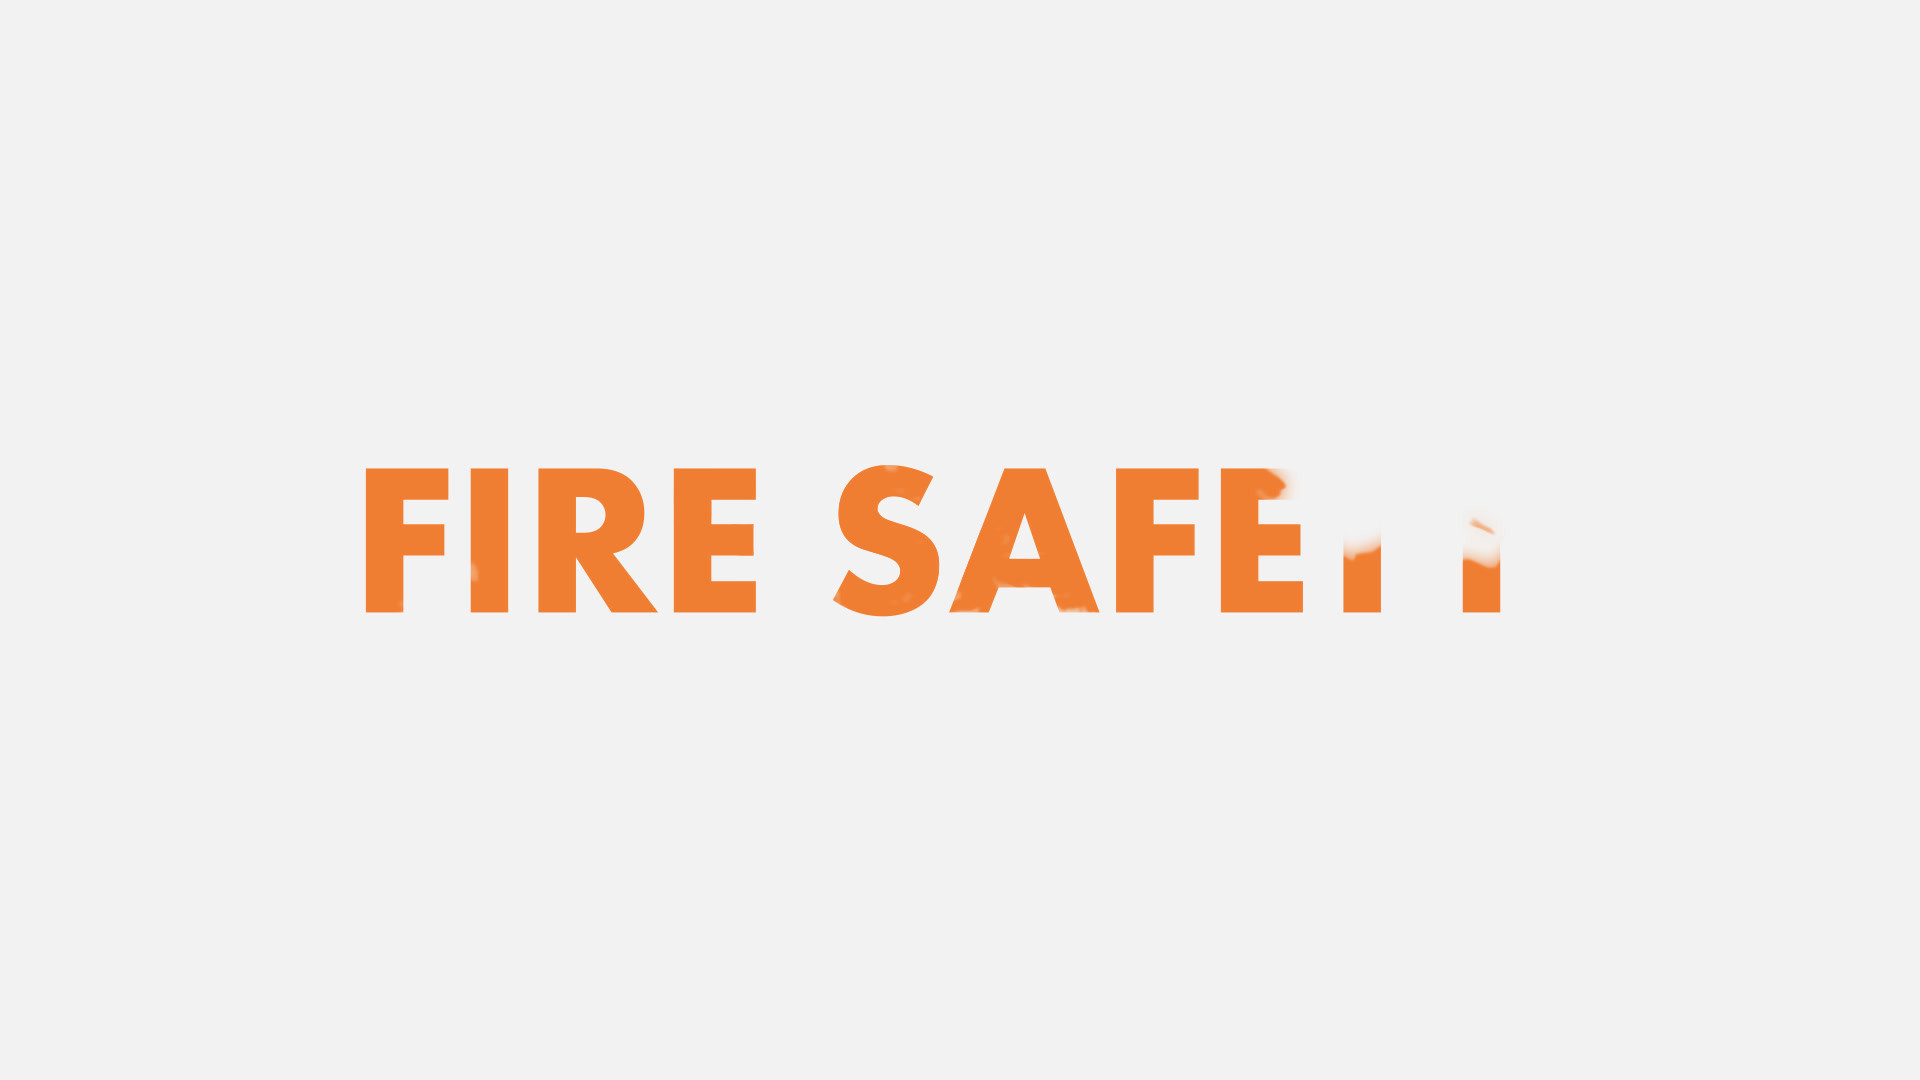 Fire Safety Title_grey.mov